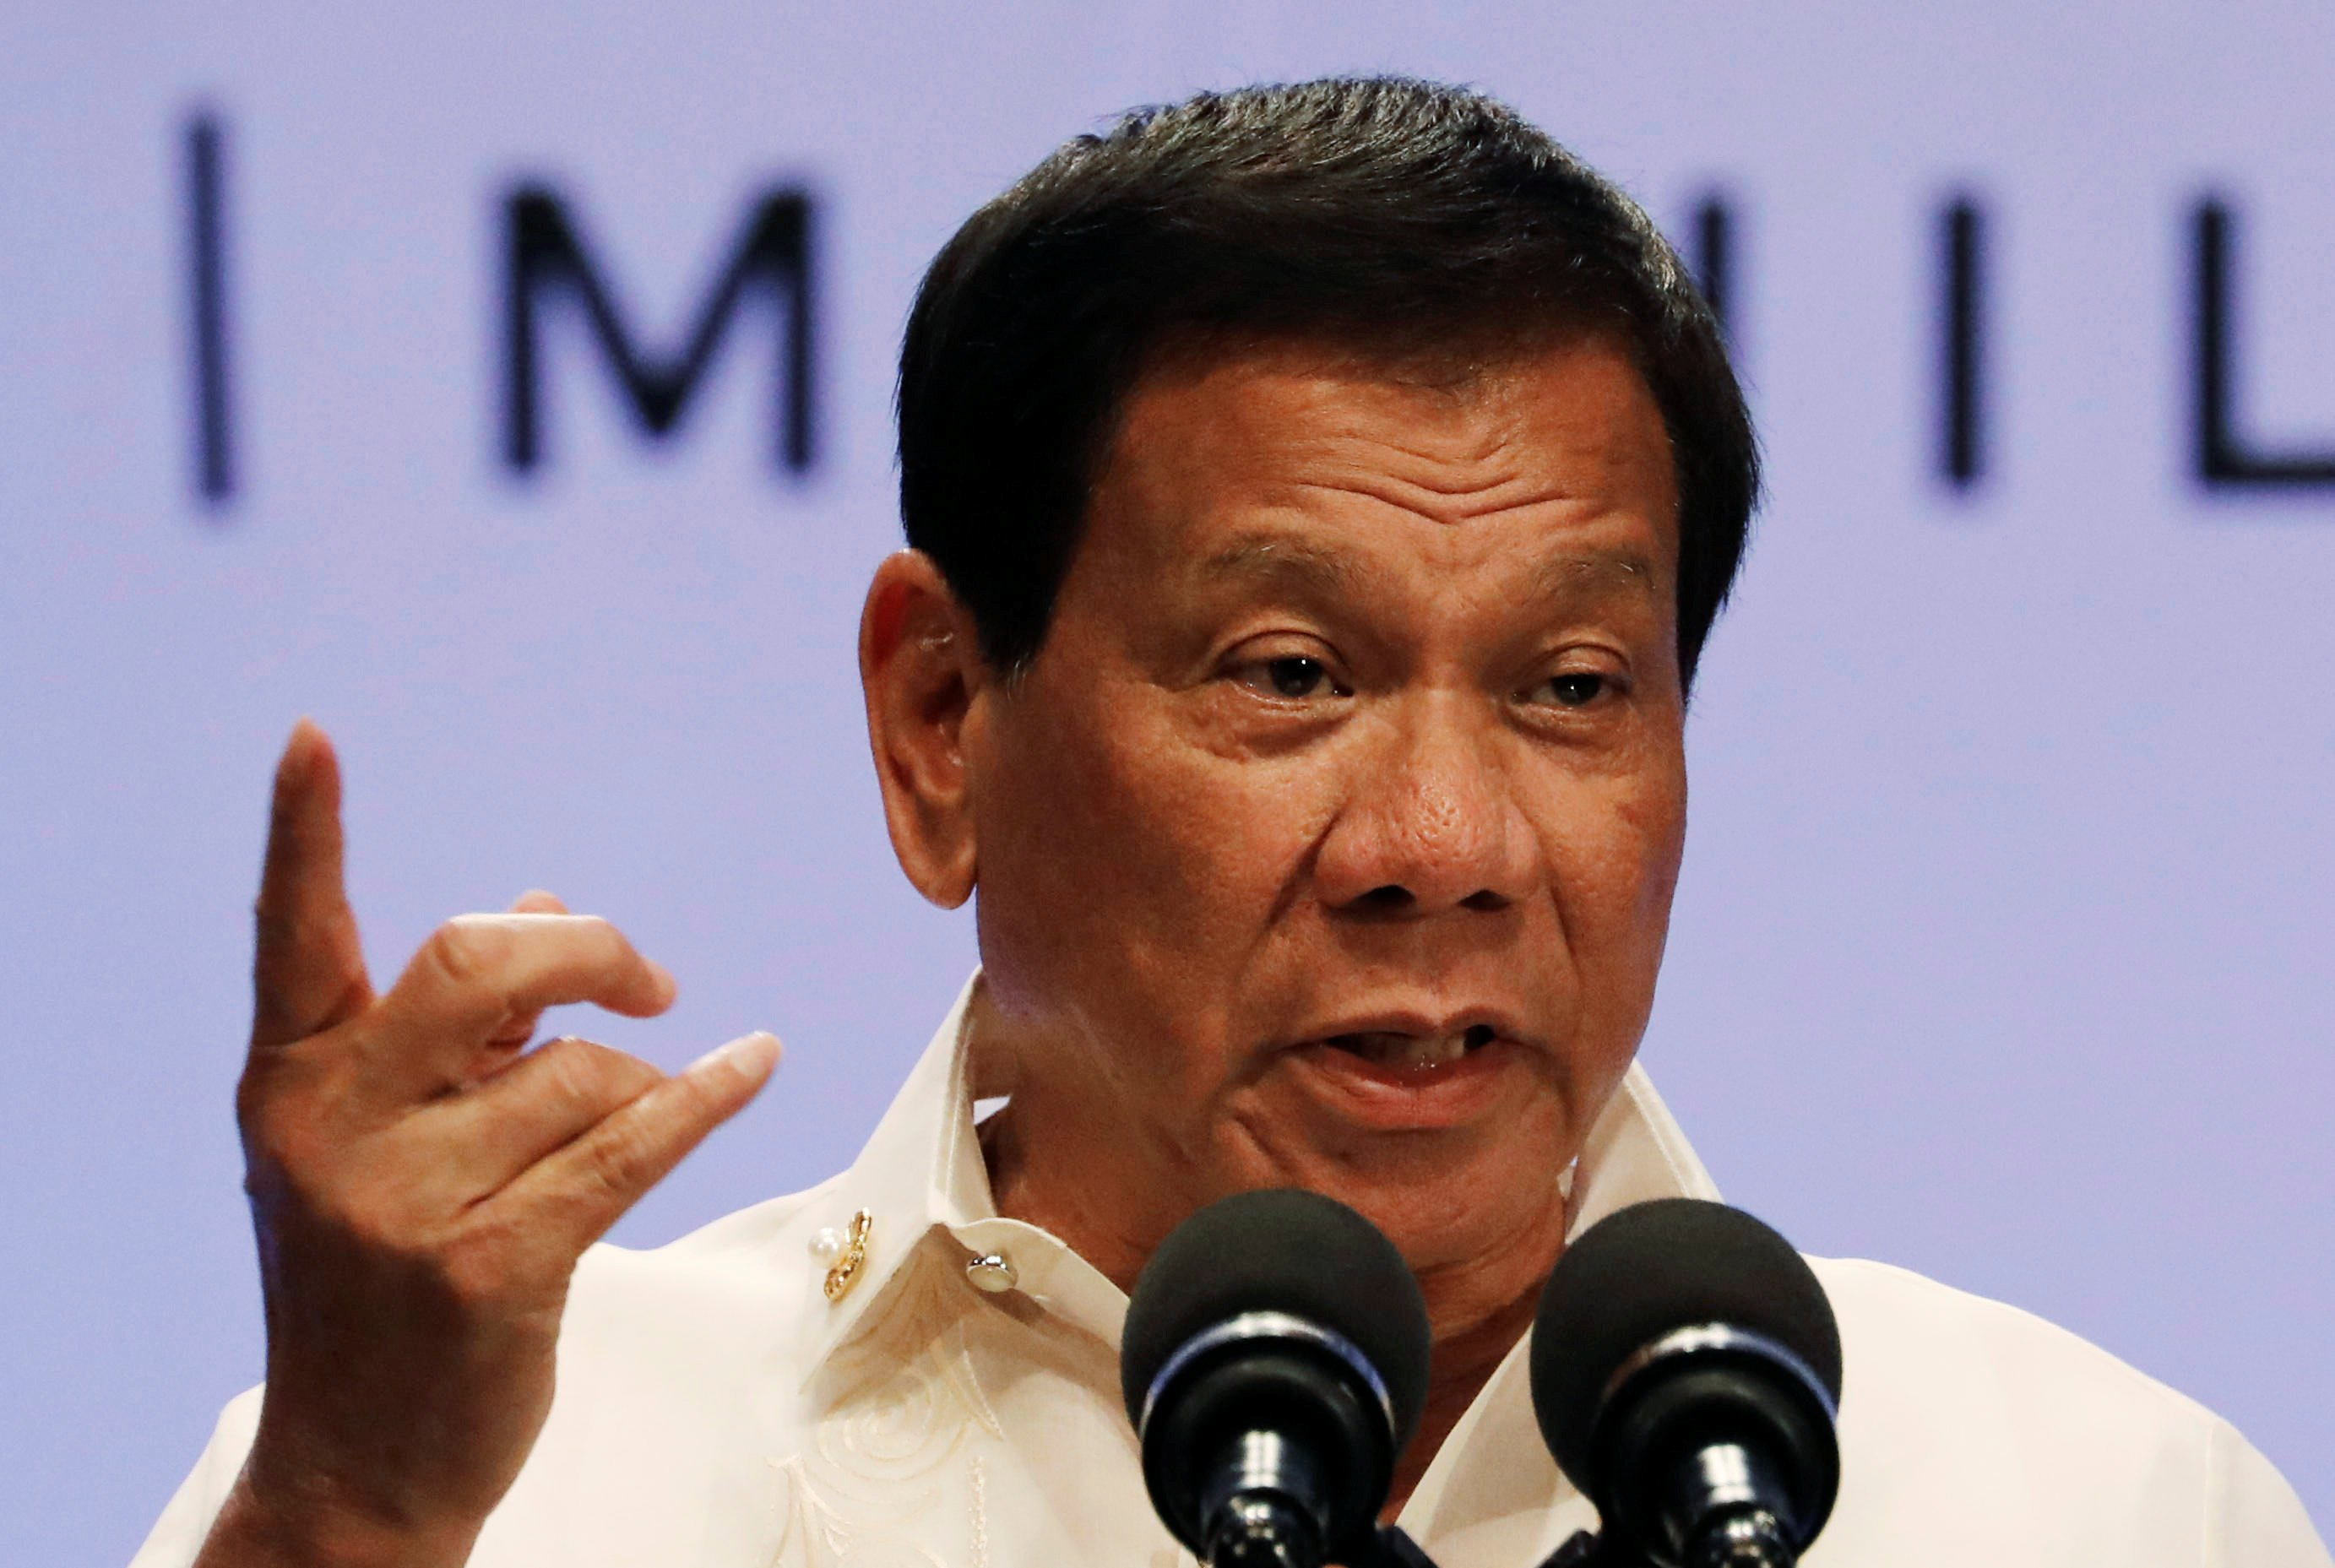 Trump Invites Controversial Philippine Leader to White House in 'Friendly' Call